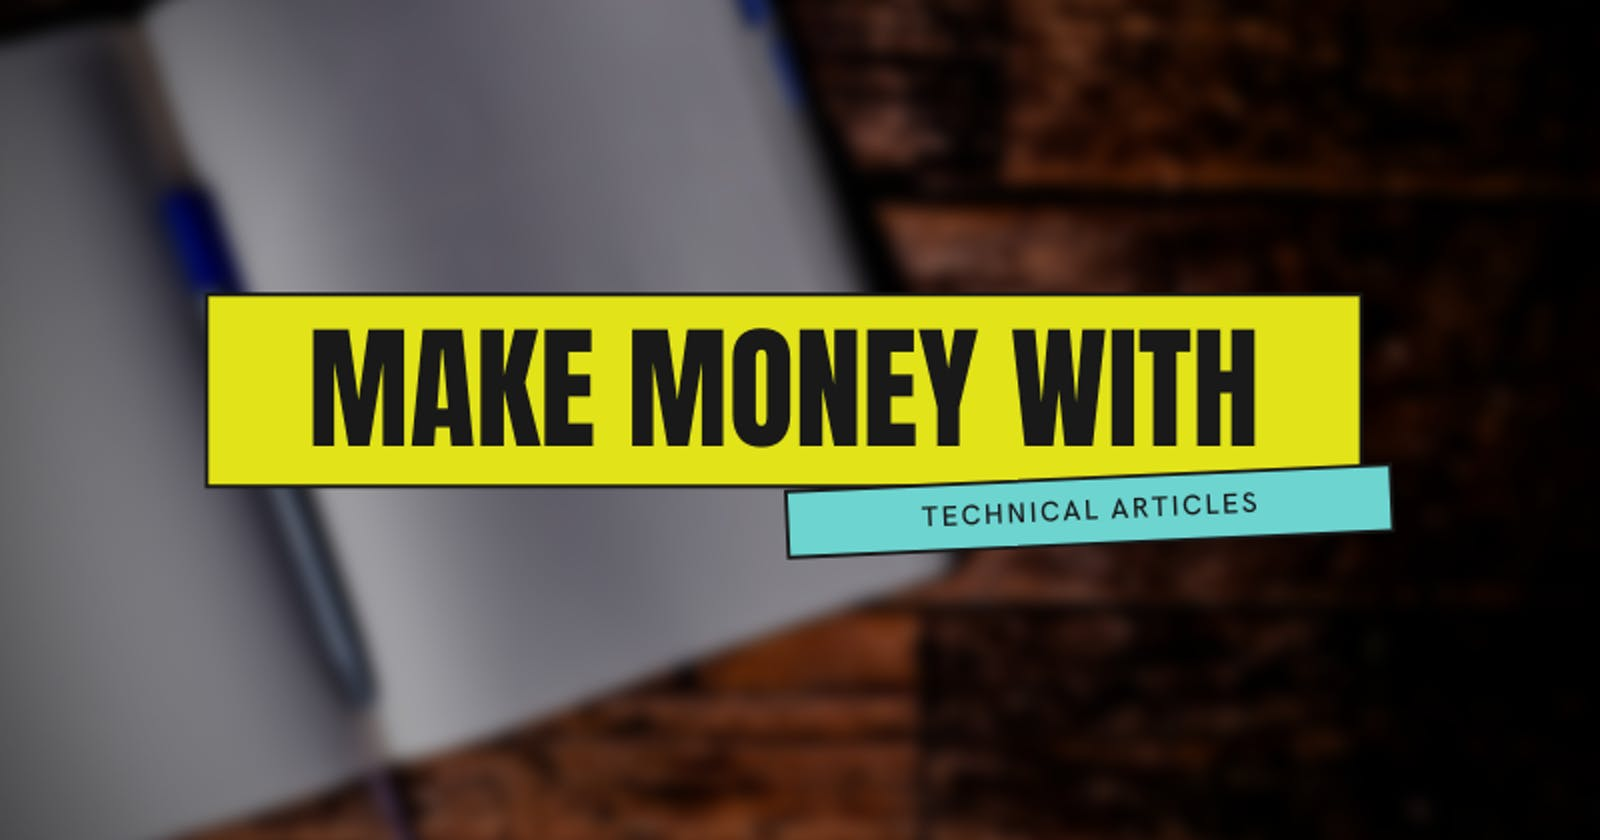 How To Make Money With Technical Articles As A Developer